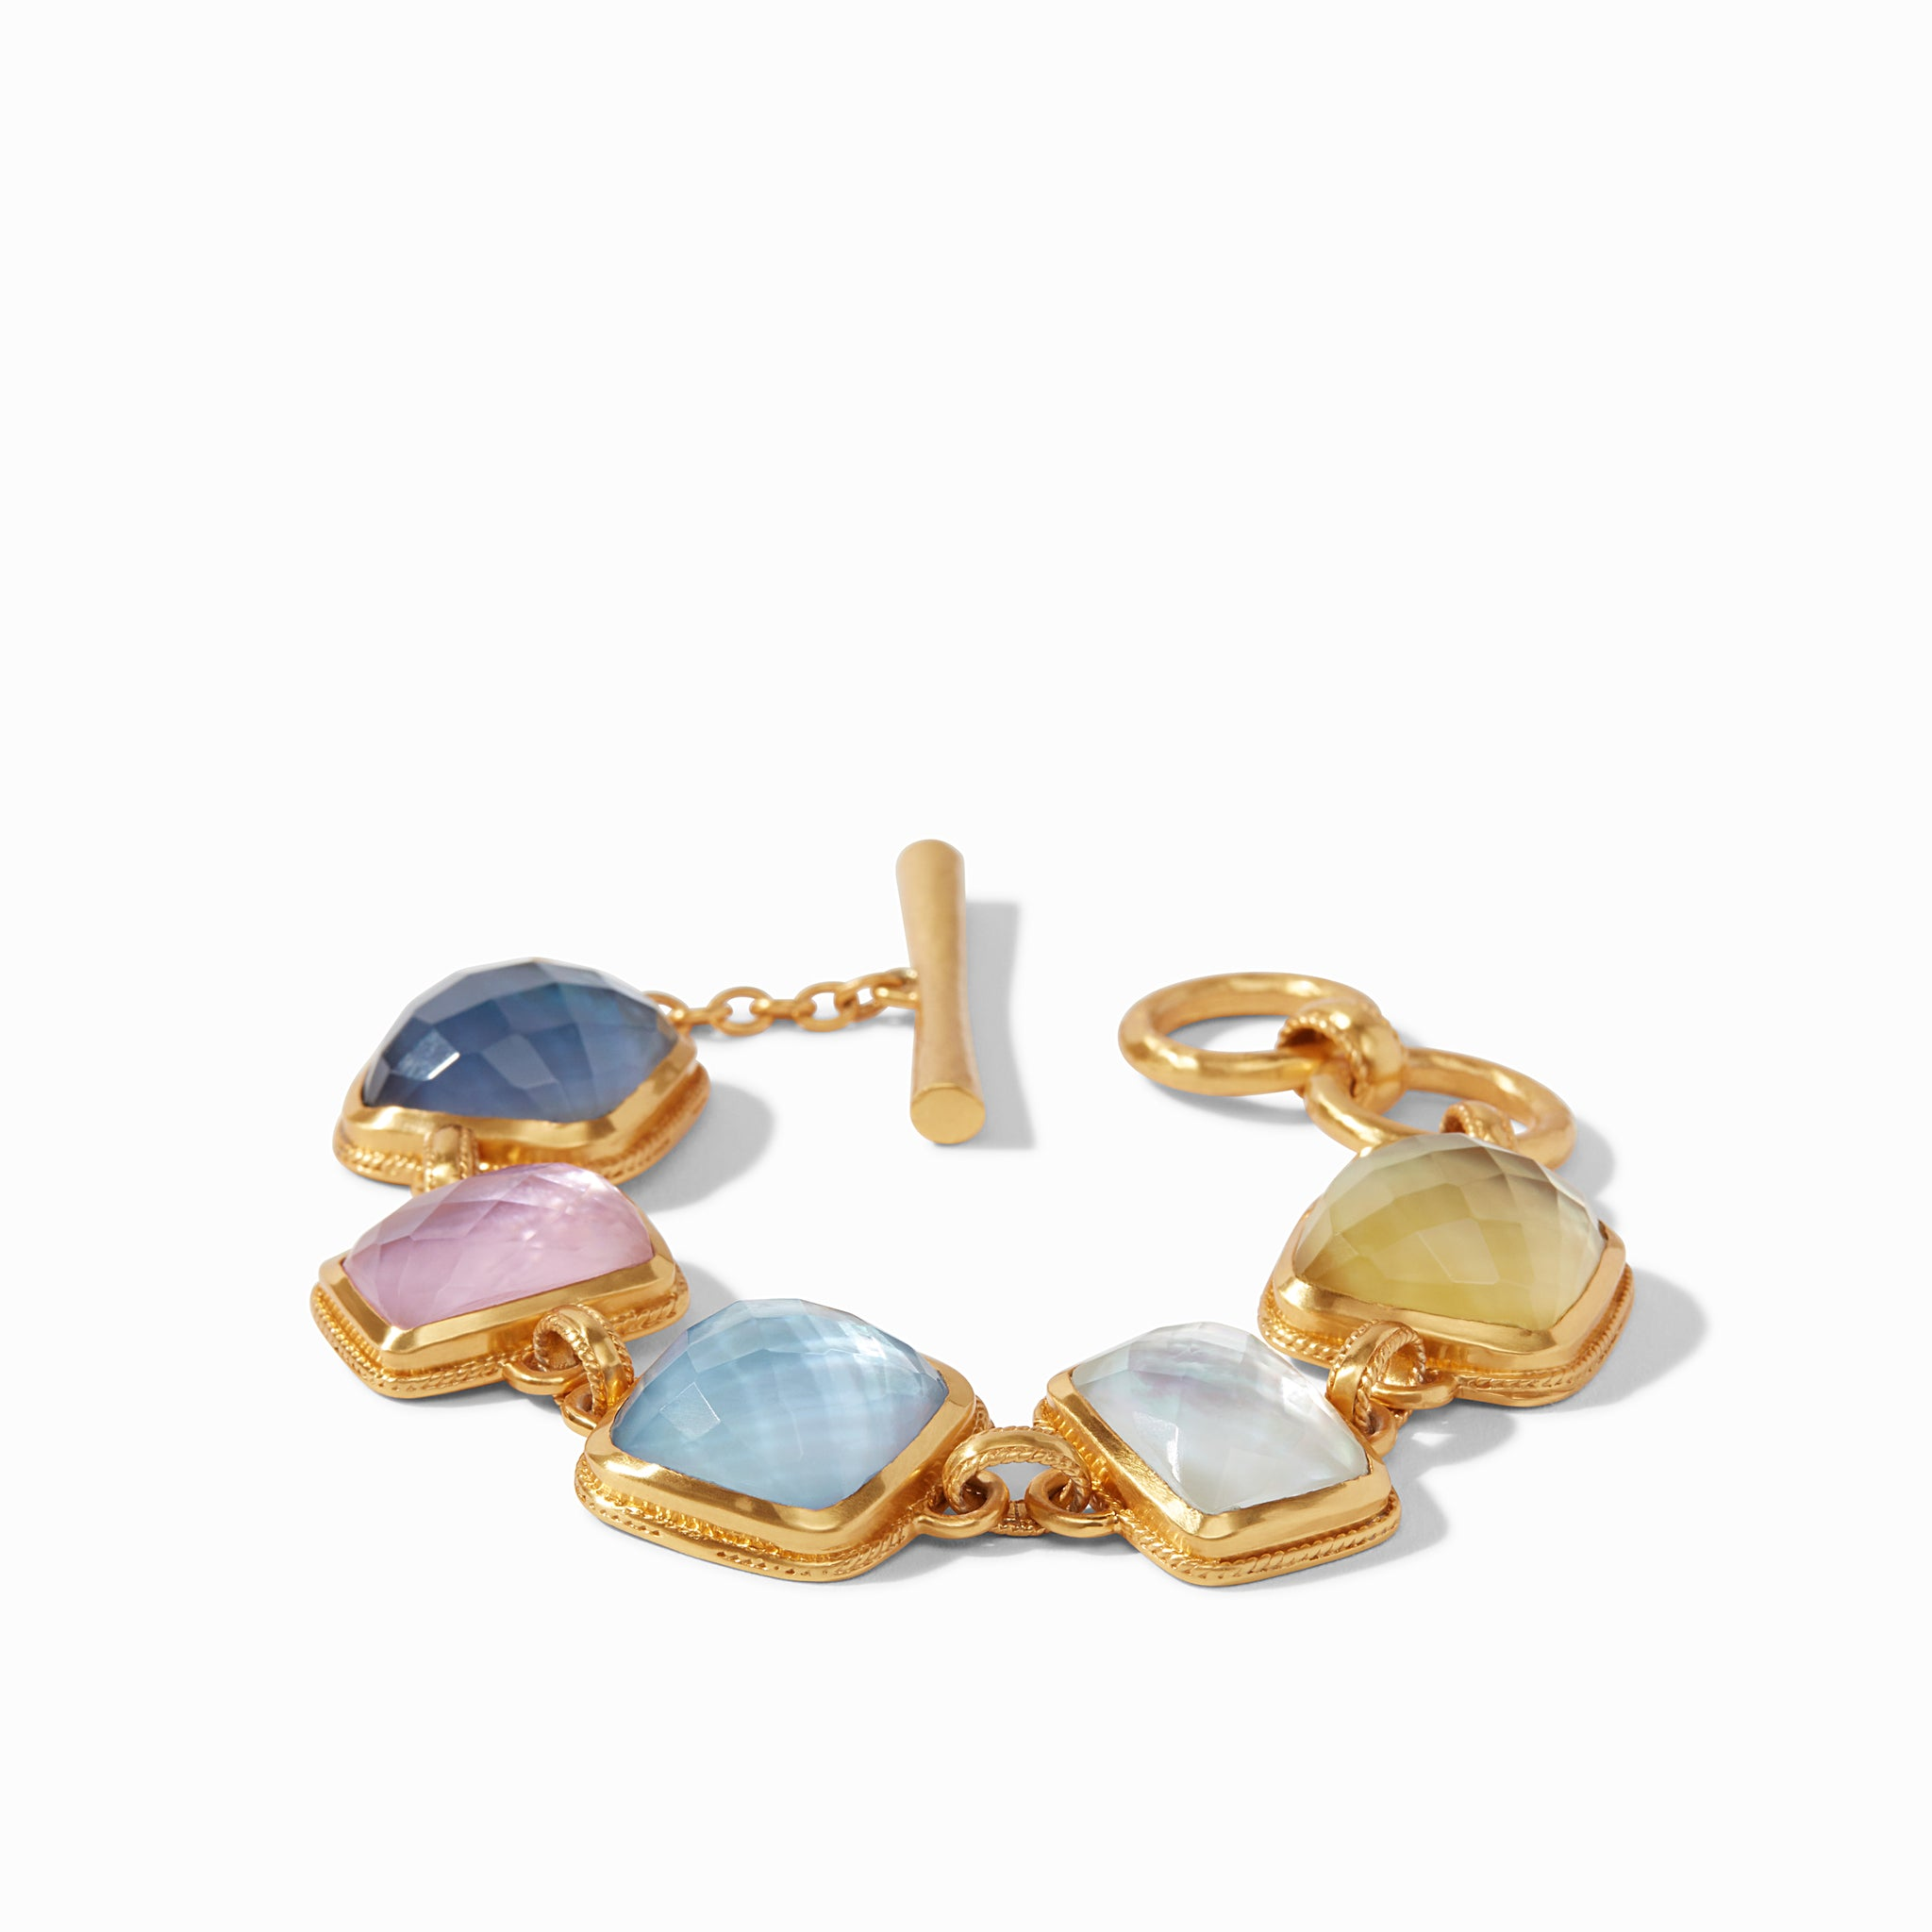 Iridescent Multi-Stone, luxe links, gifts, arm party, classics